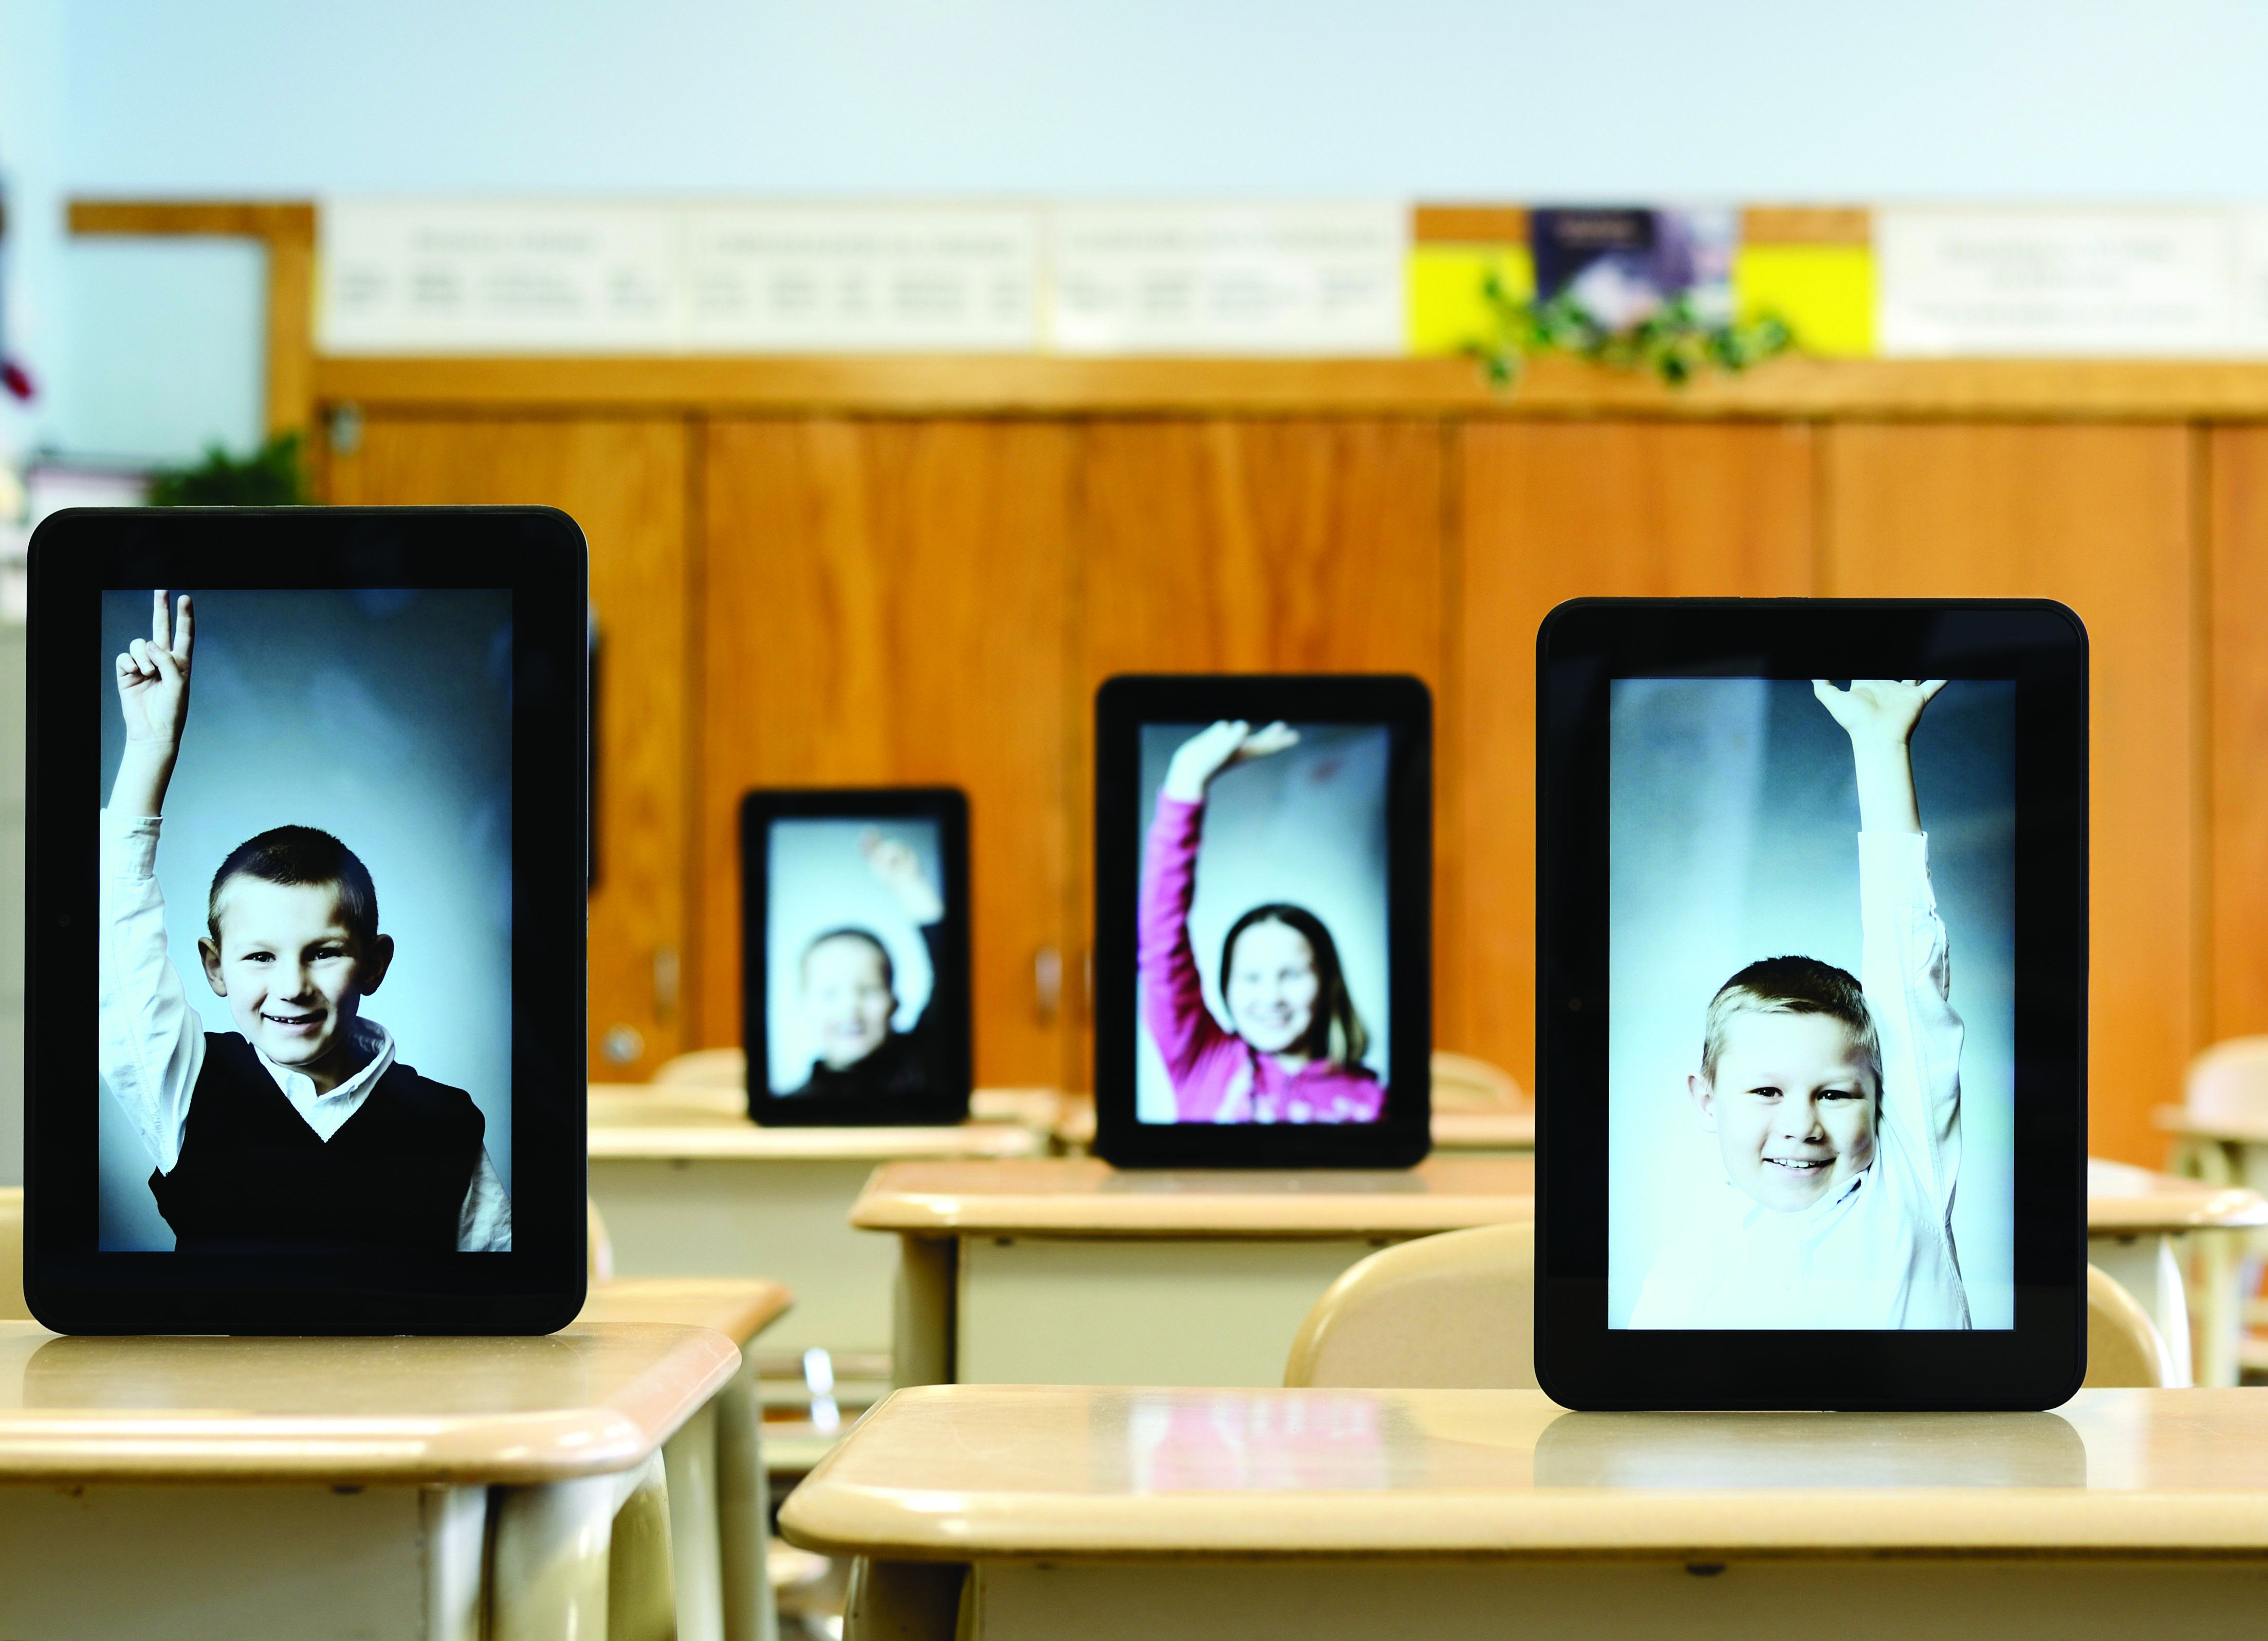 Can computers replace teachers?